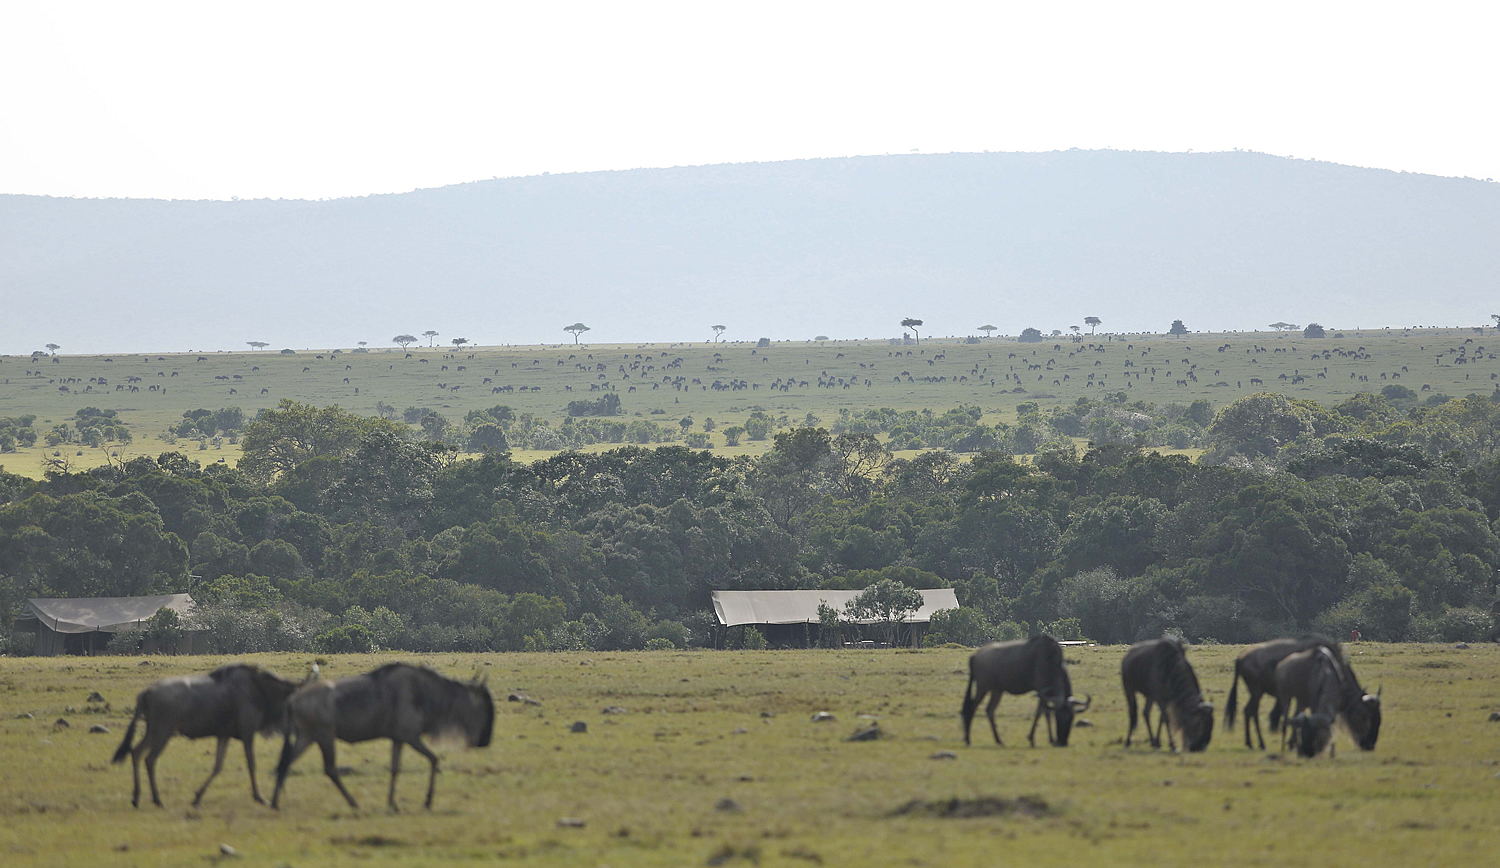 Saruni Wild - surrounded by the famous Masai Mara migration